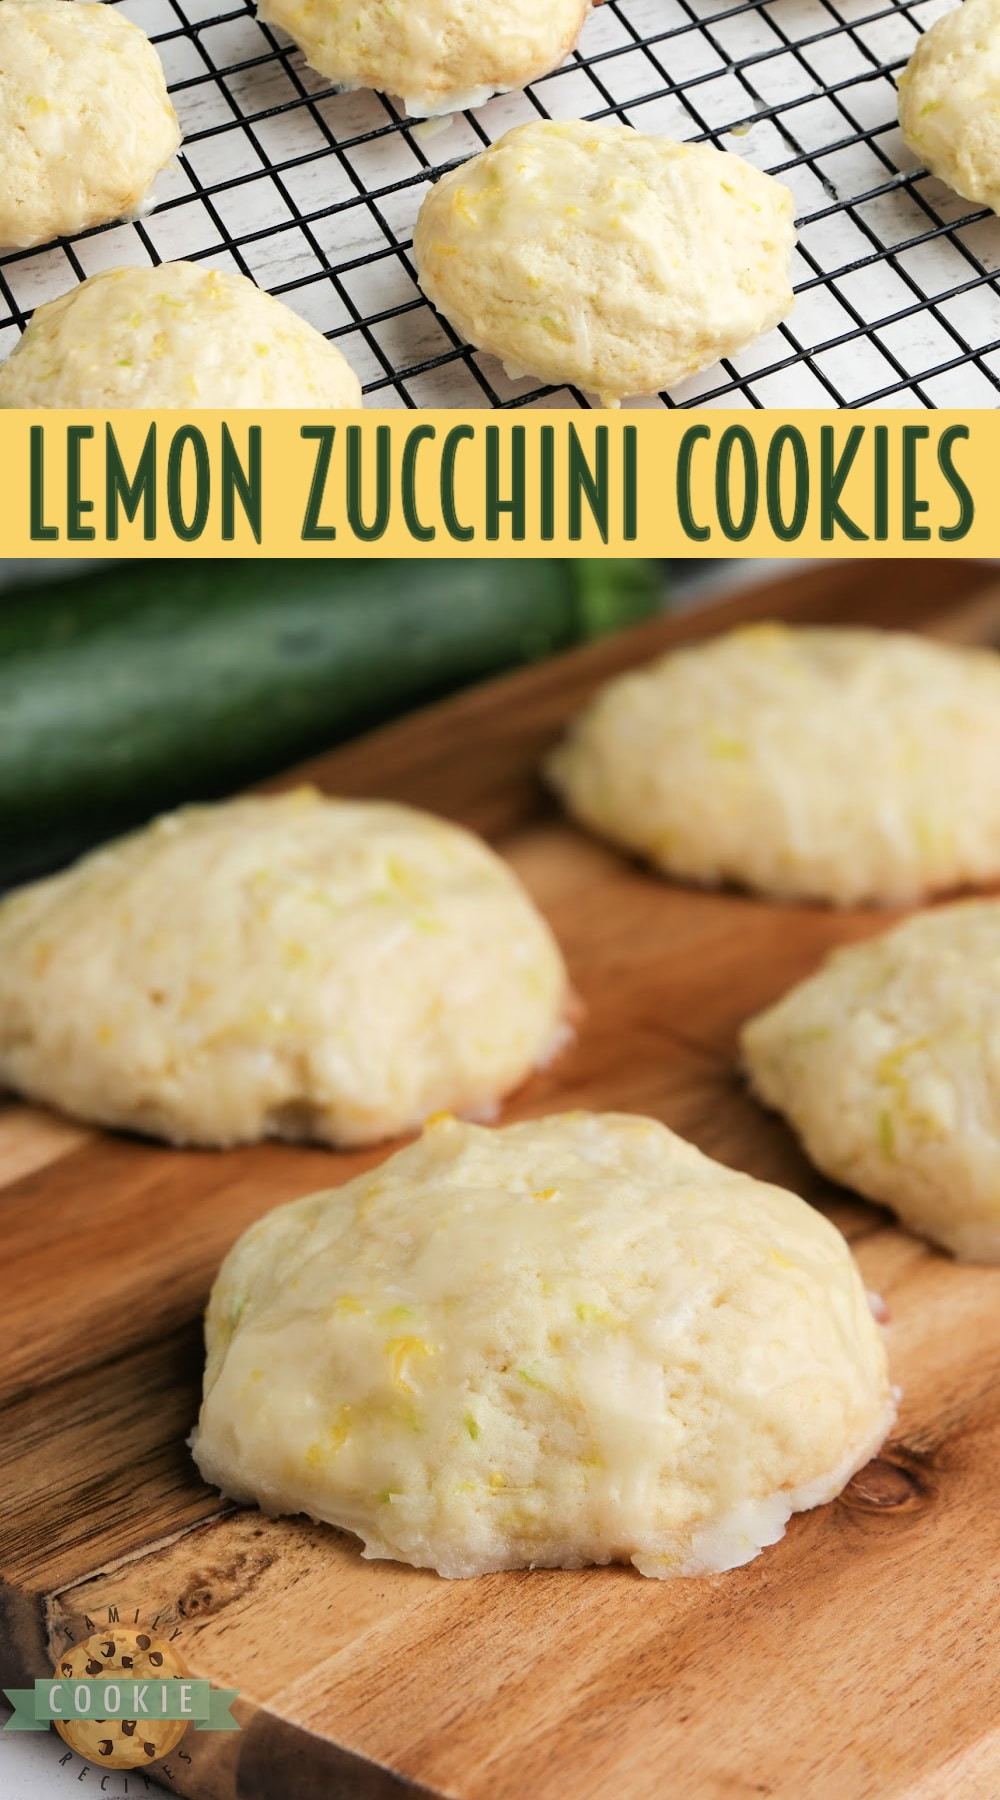 Lemon Zucchini Cookies made with lots of lemon flavor and shredded zucchini. Topped with a delicious lemon glaze, these zucchini cookies are absolutely incredible! via @familycookierecipes